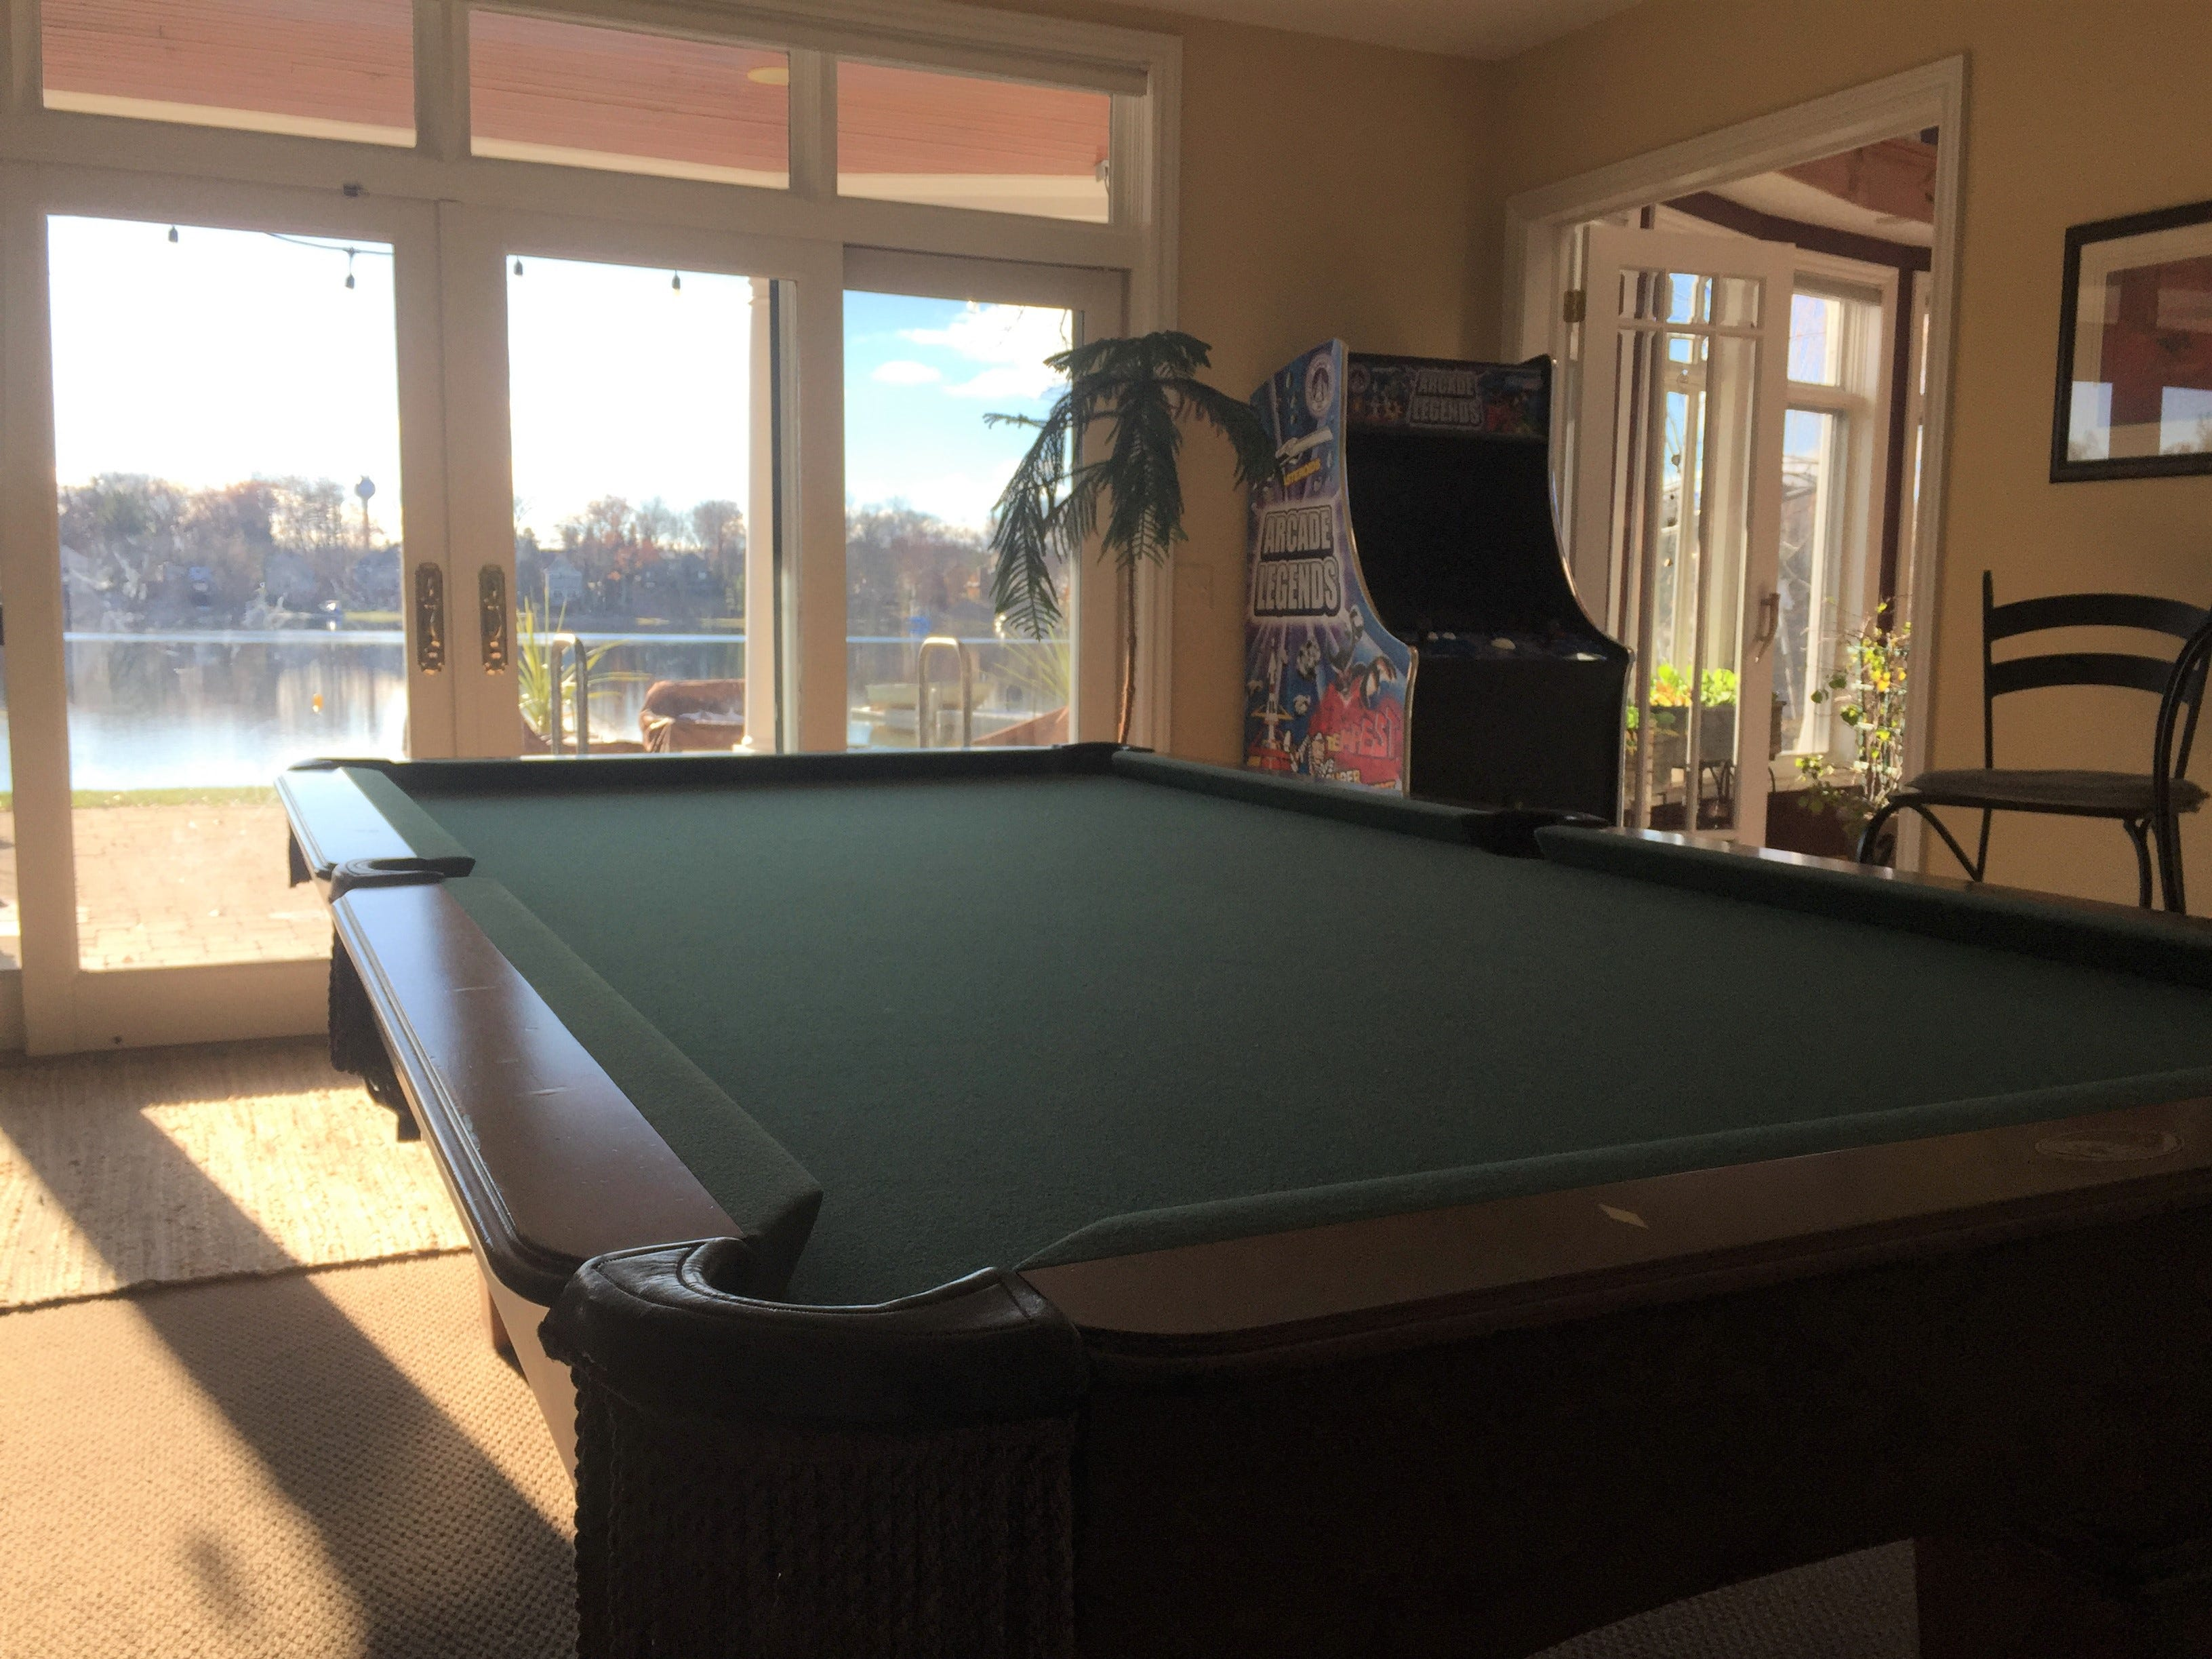 An arcade game and pool table create an entertainment space on the lower-level walk-out basement in a Clifford Road home in Genoa Township, shown Dec. 4, 2018